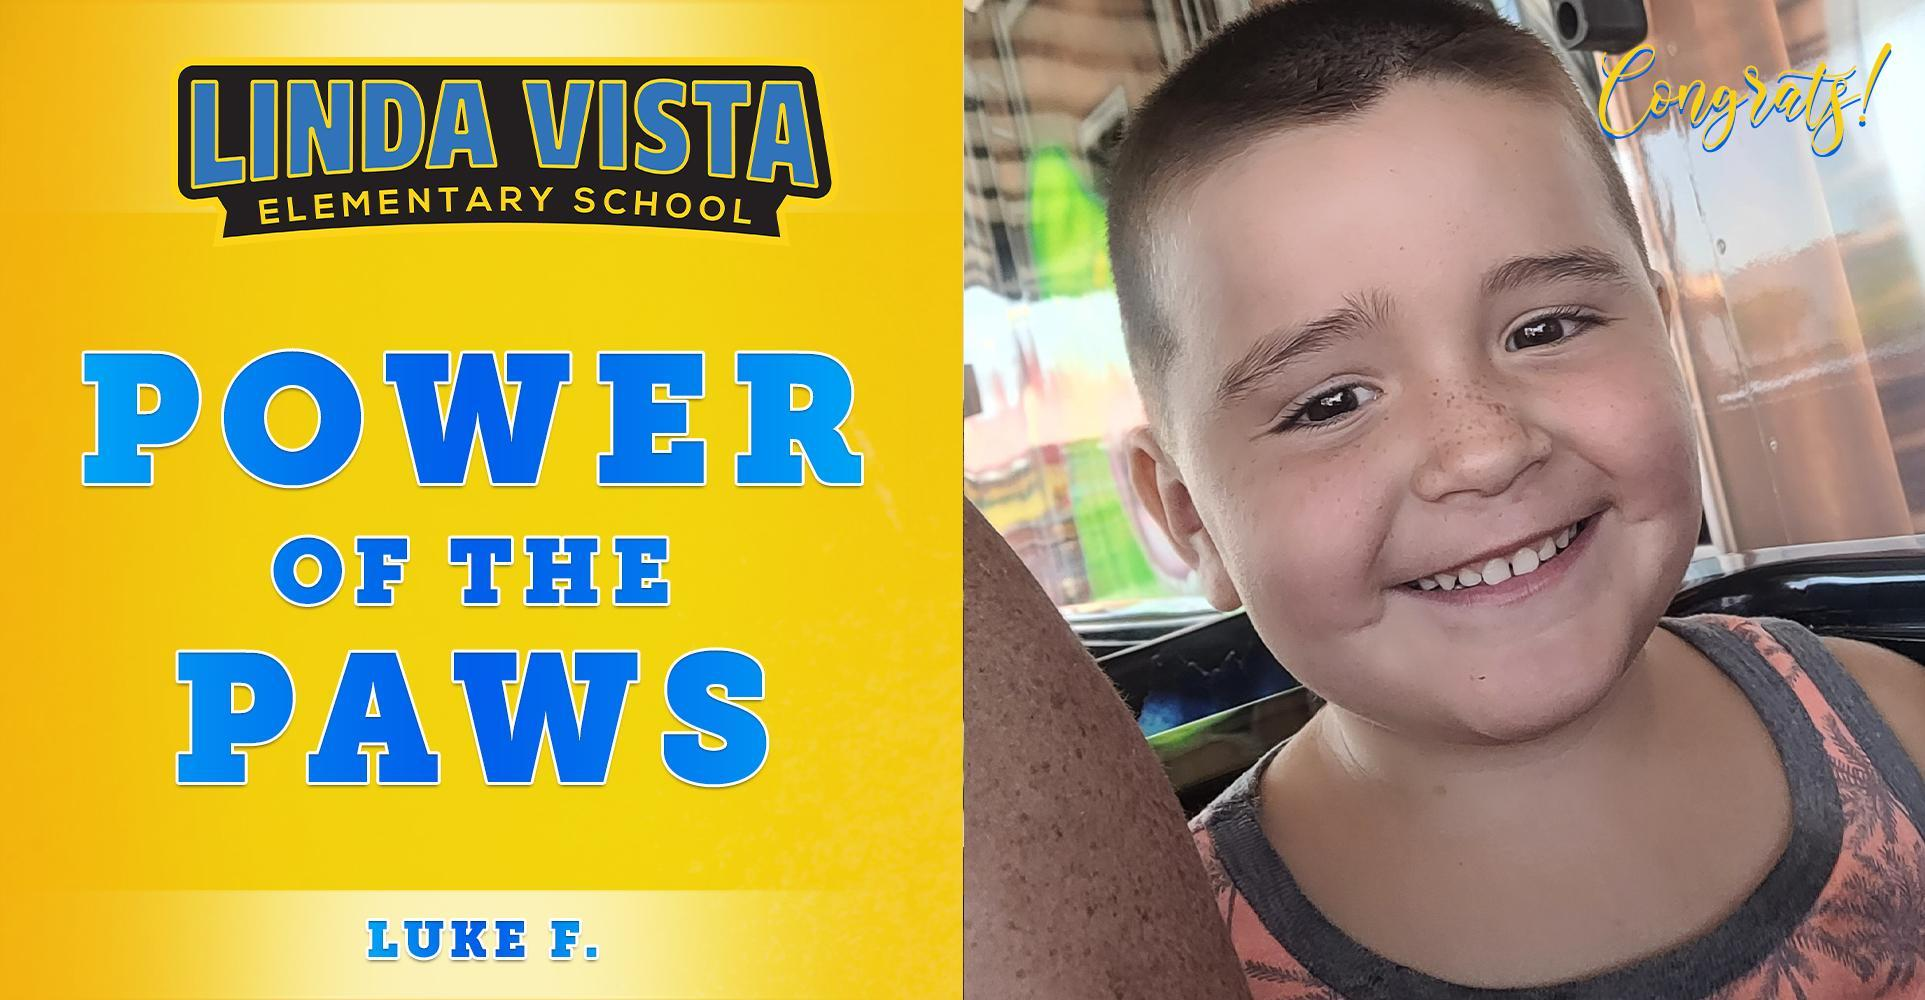 Congrats to This Week's Power of the PAWS Student, Luke F!